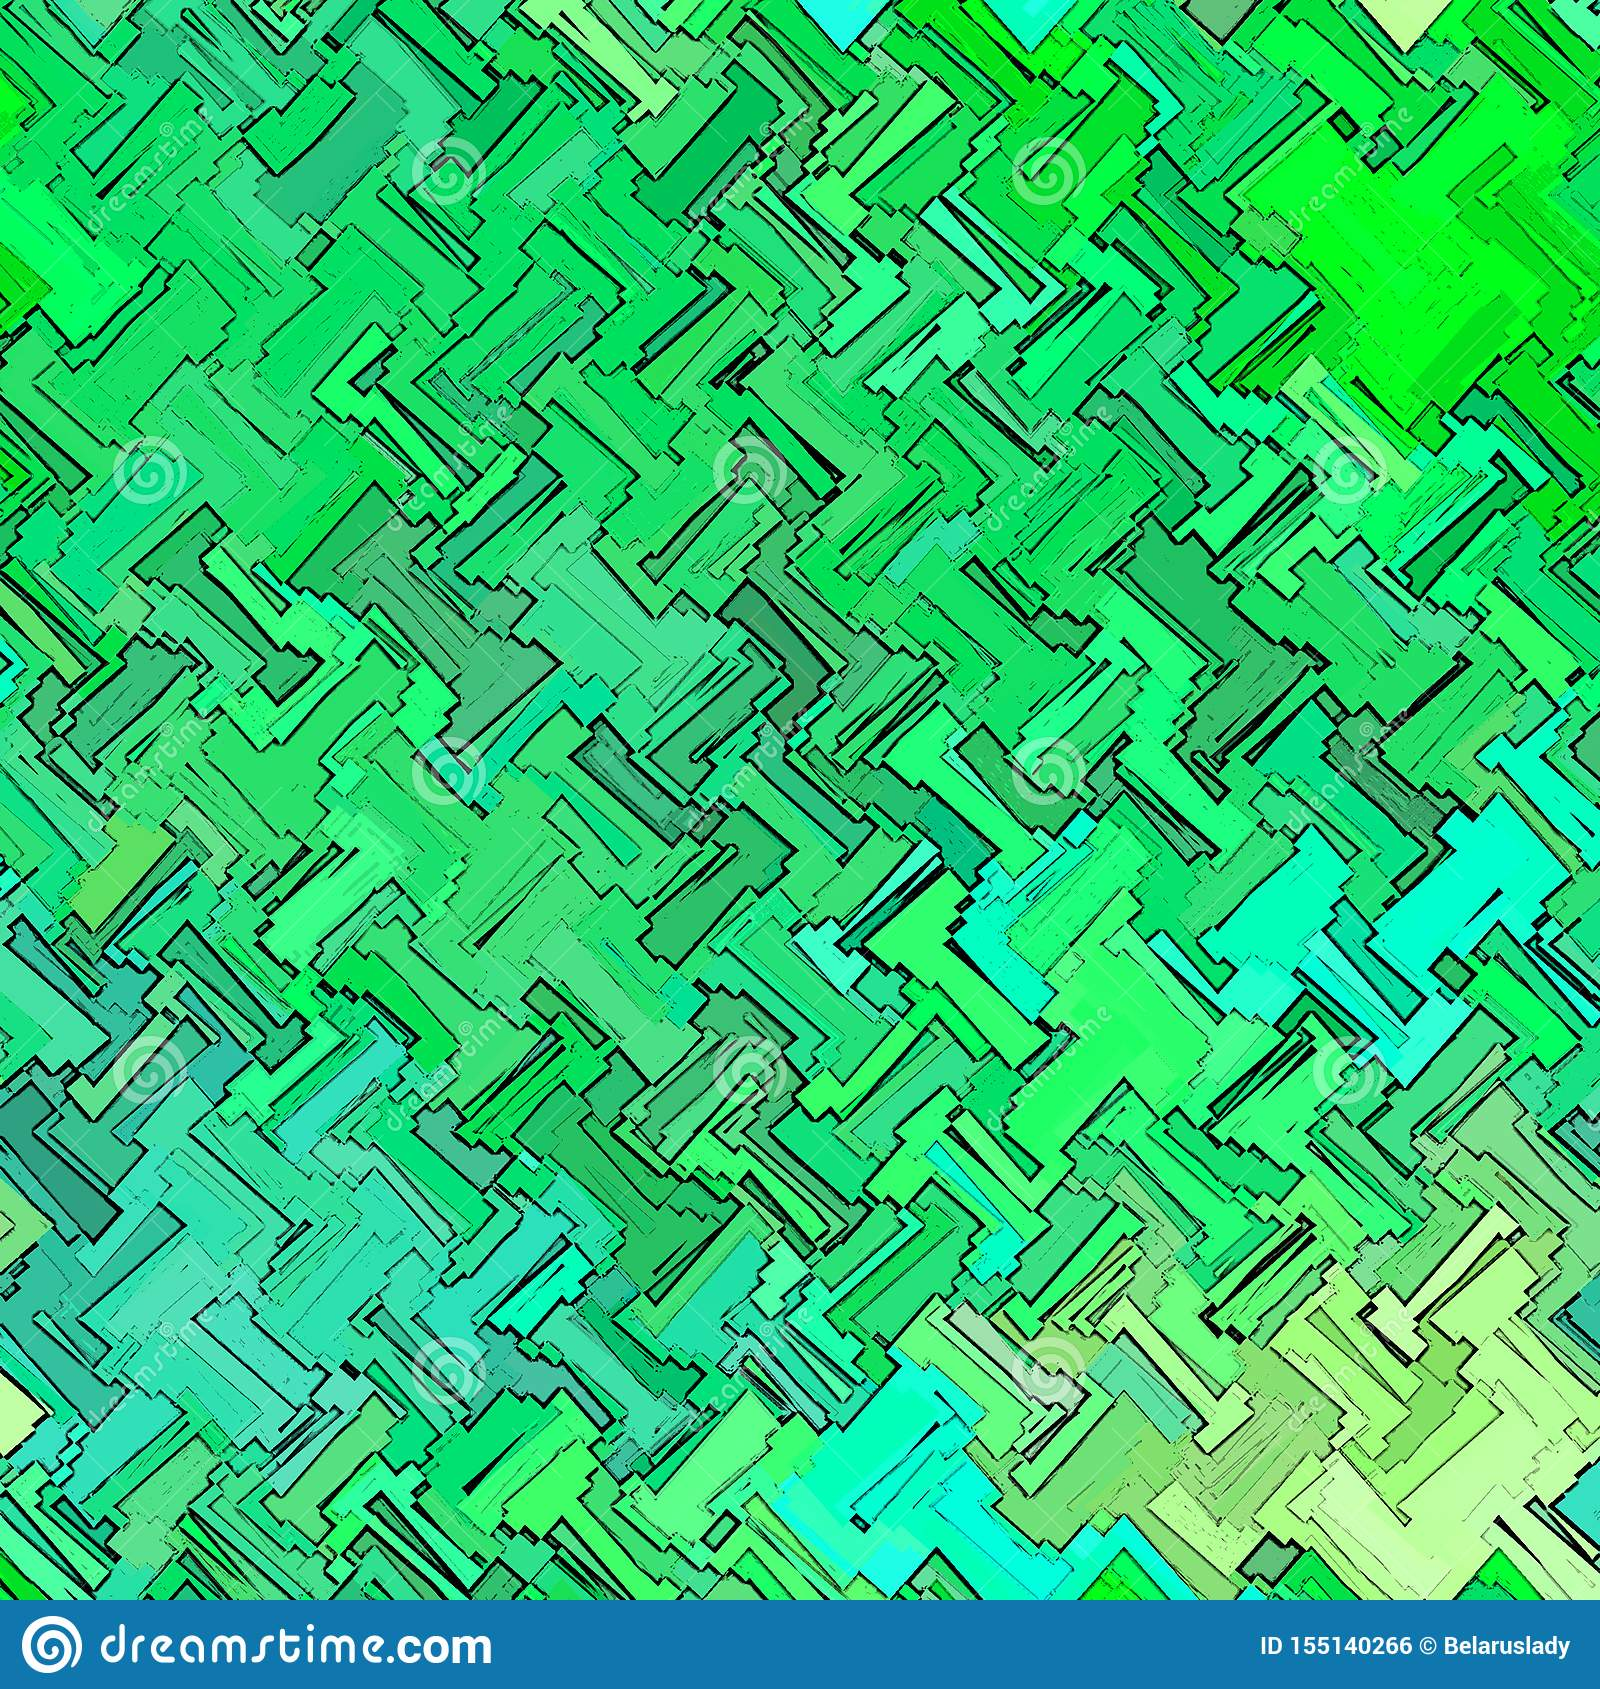 The Texture Of Teal And Turquoise: Wallpaper Continuous Background In Green, Turquoise And